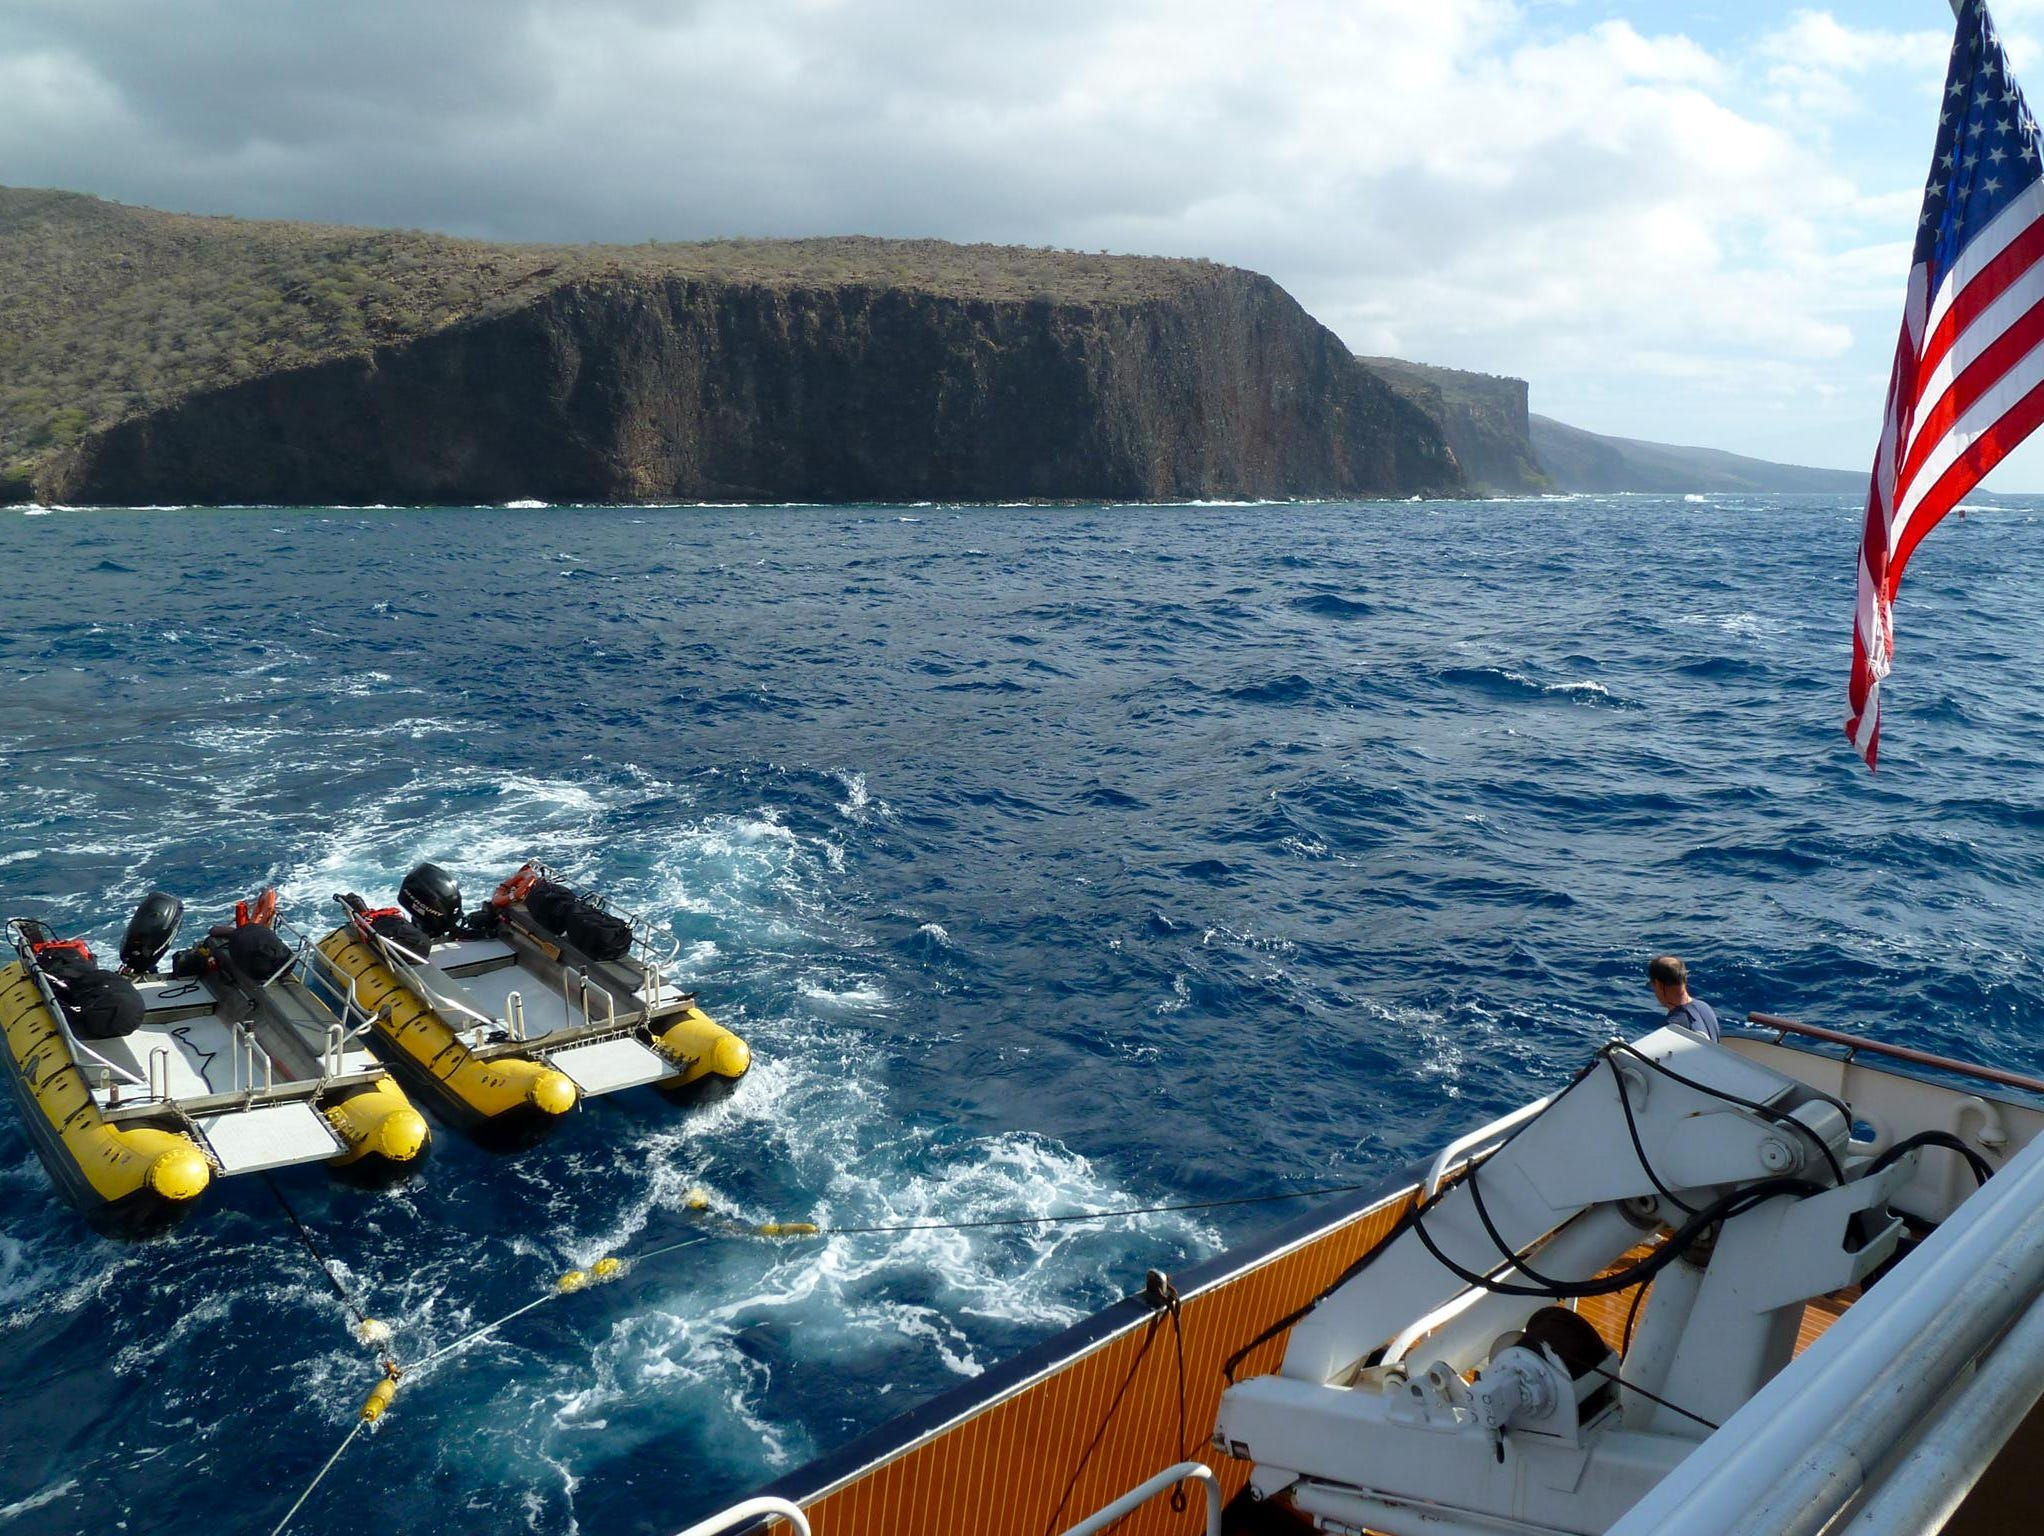 Two skiffs are used for landings, sightseeing and diving expeditions. When not in use, they are towed behind the ship.